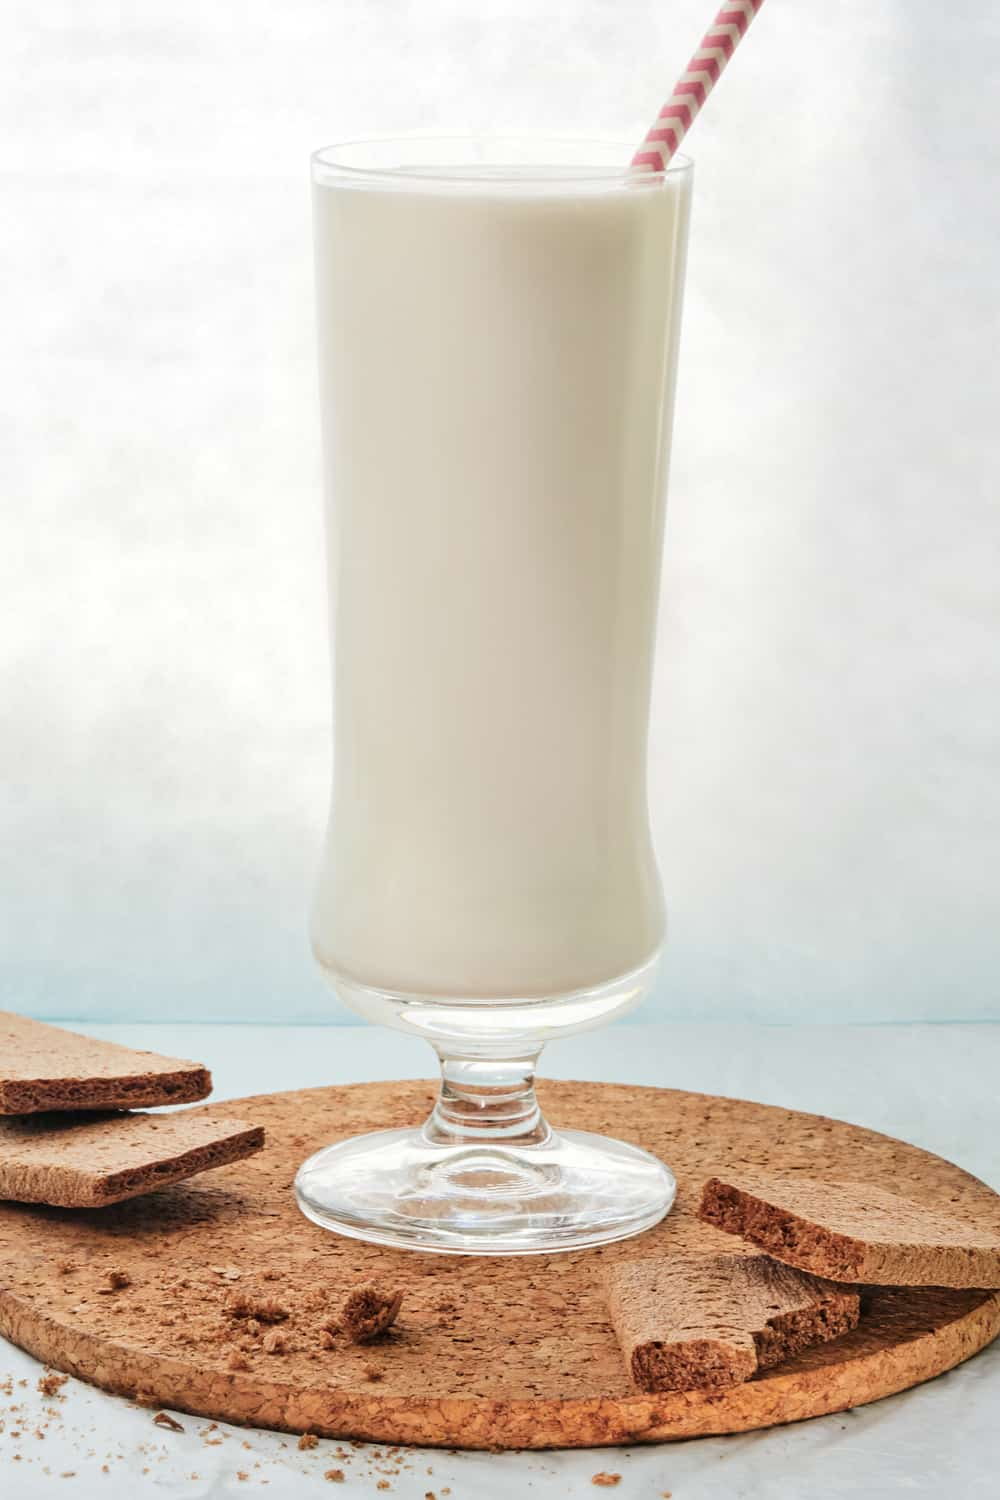 7 Tips to store buttermilk